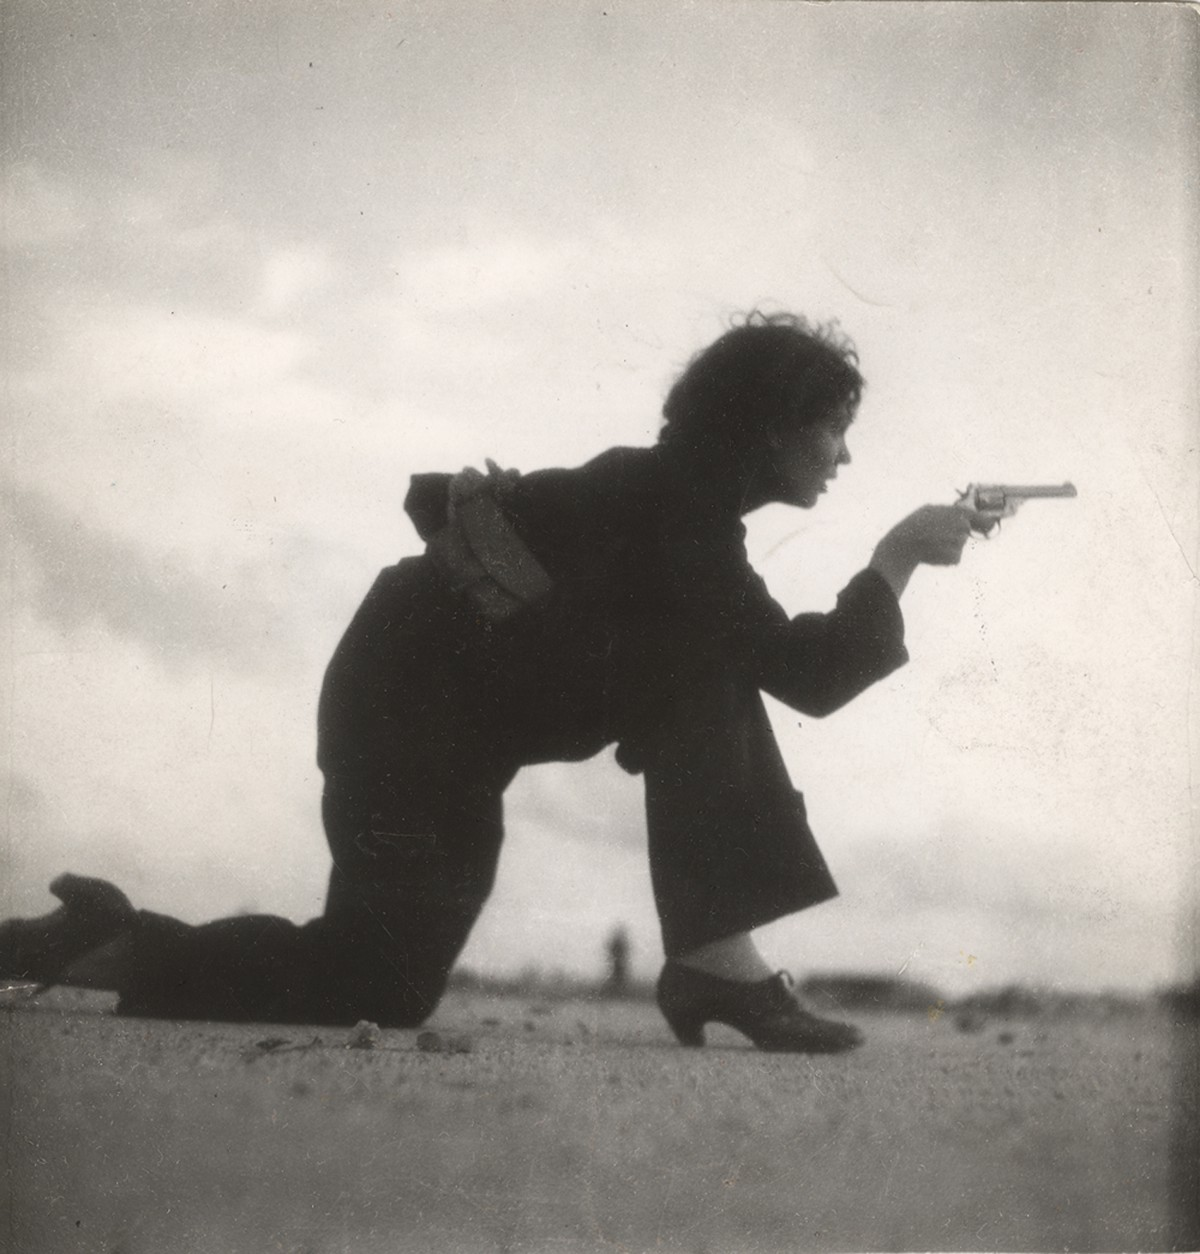 #picturethis: #anonymouswasawoman:The first female war photographer killed in action was 26 and had a brilliant career ahead of…